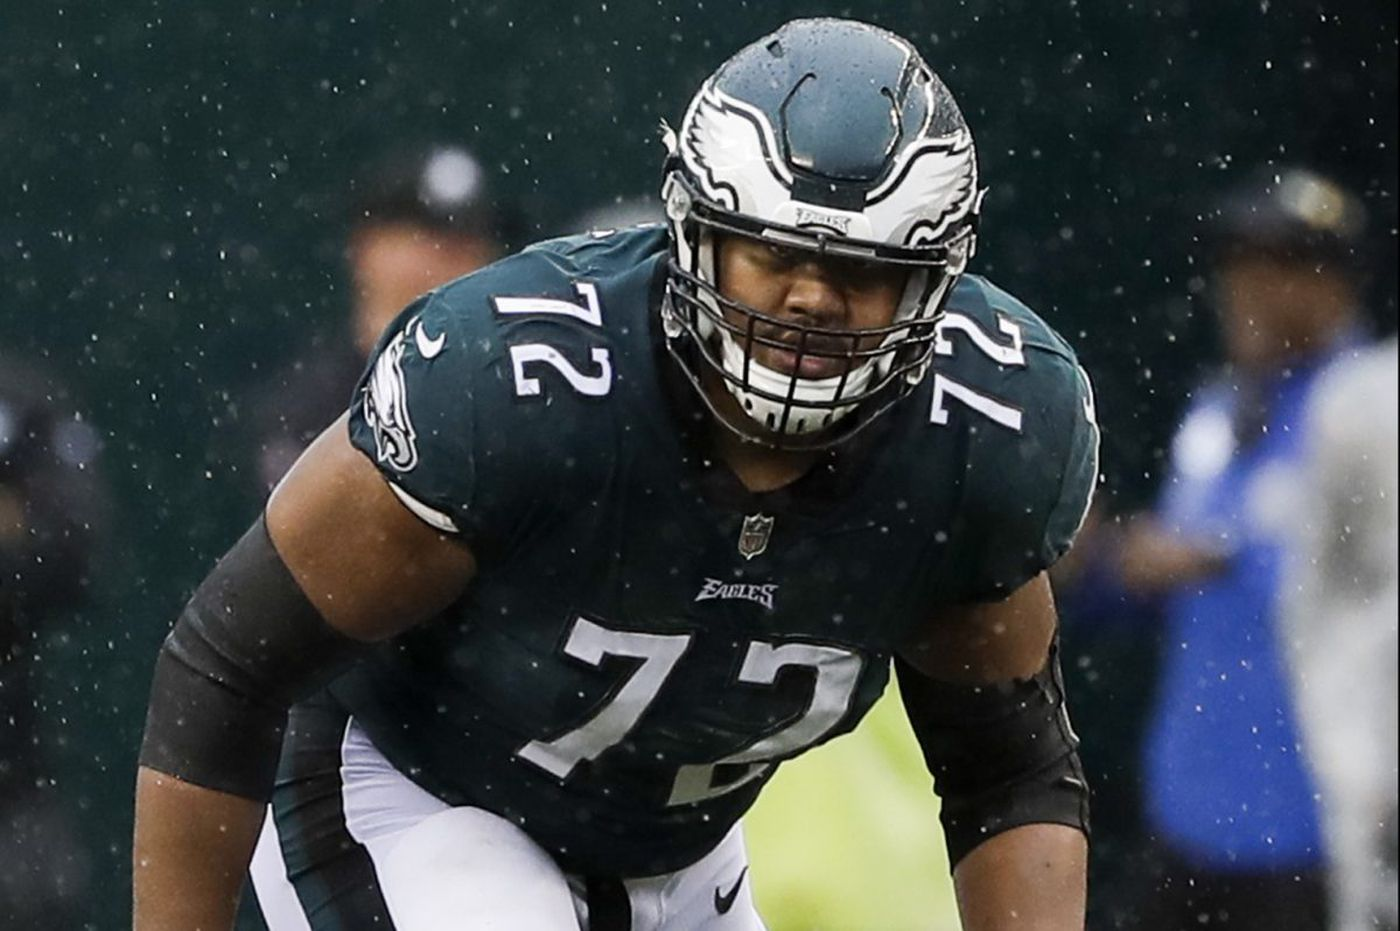 Eagles lucky to have Vaitai for now, and for the future   Marcus Hayes